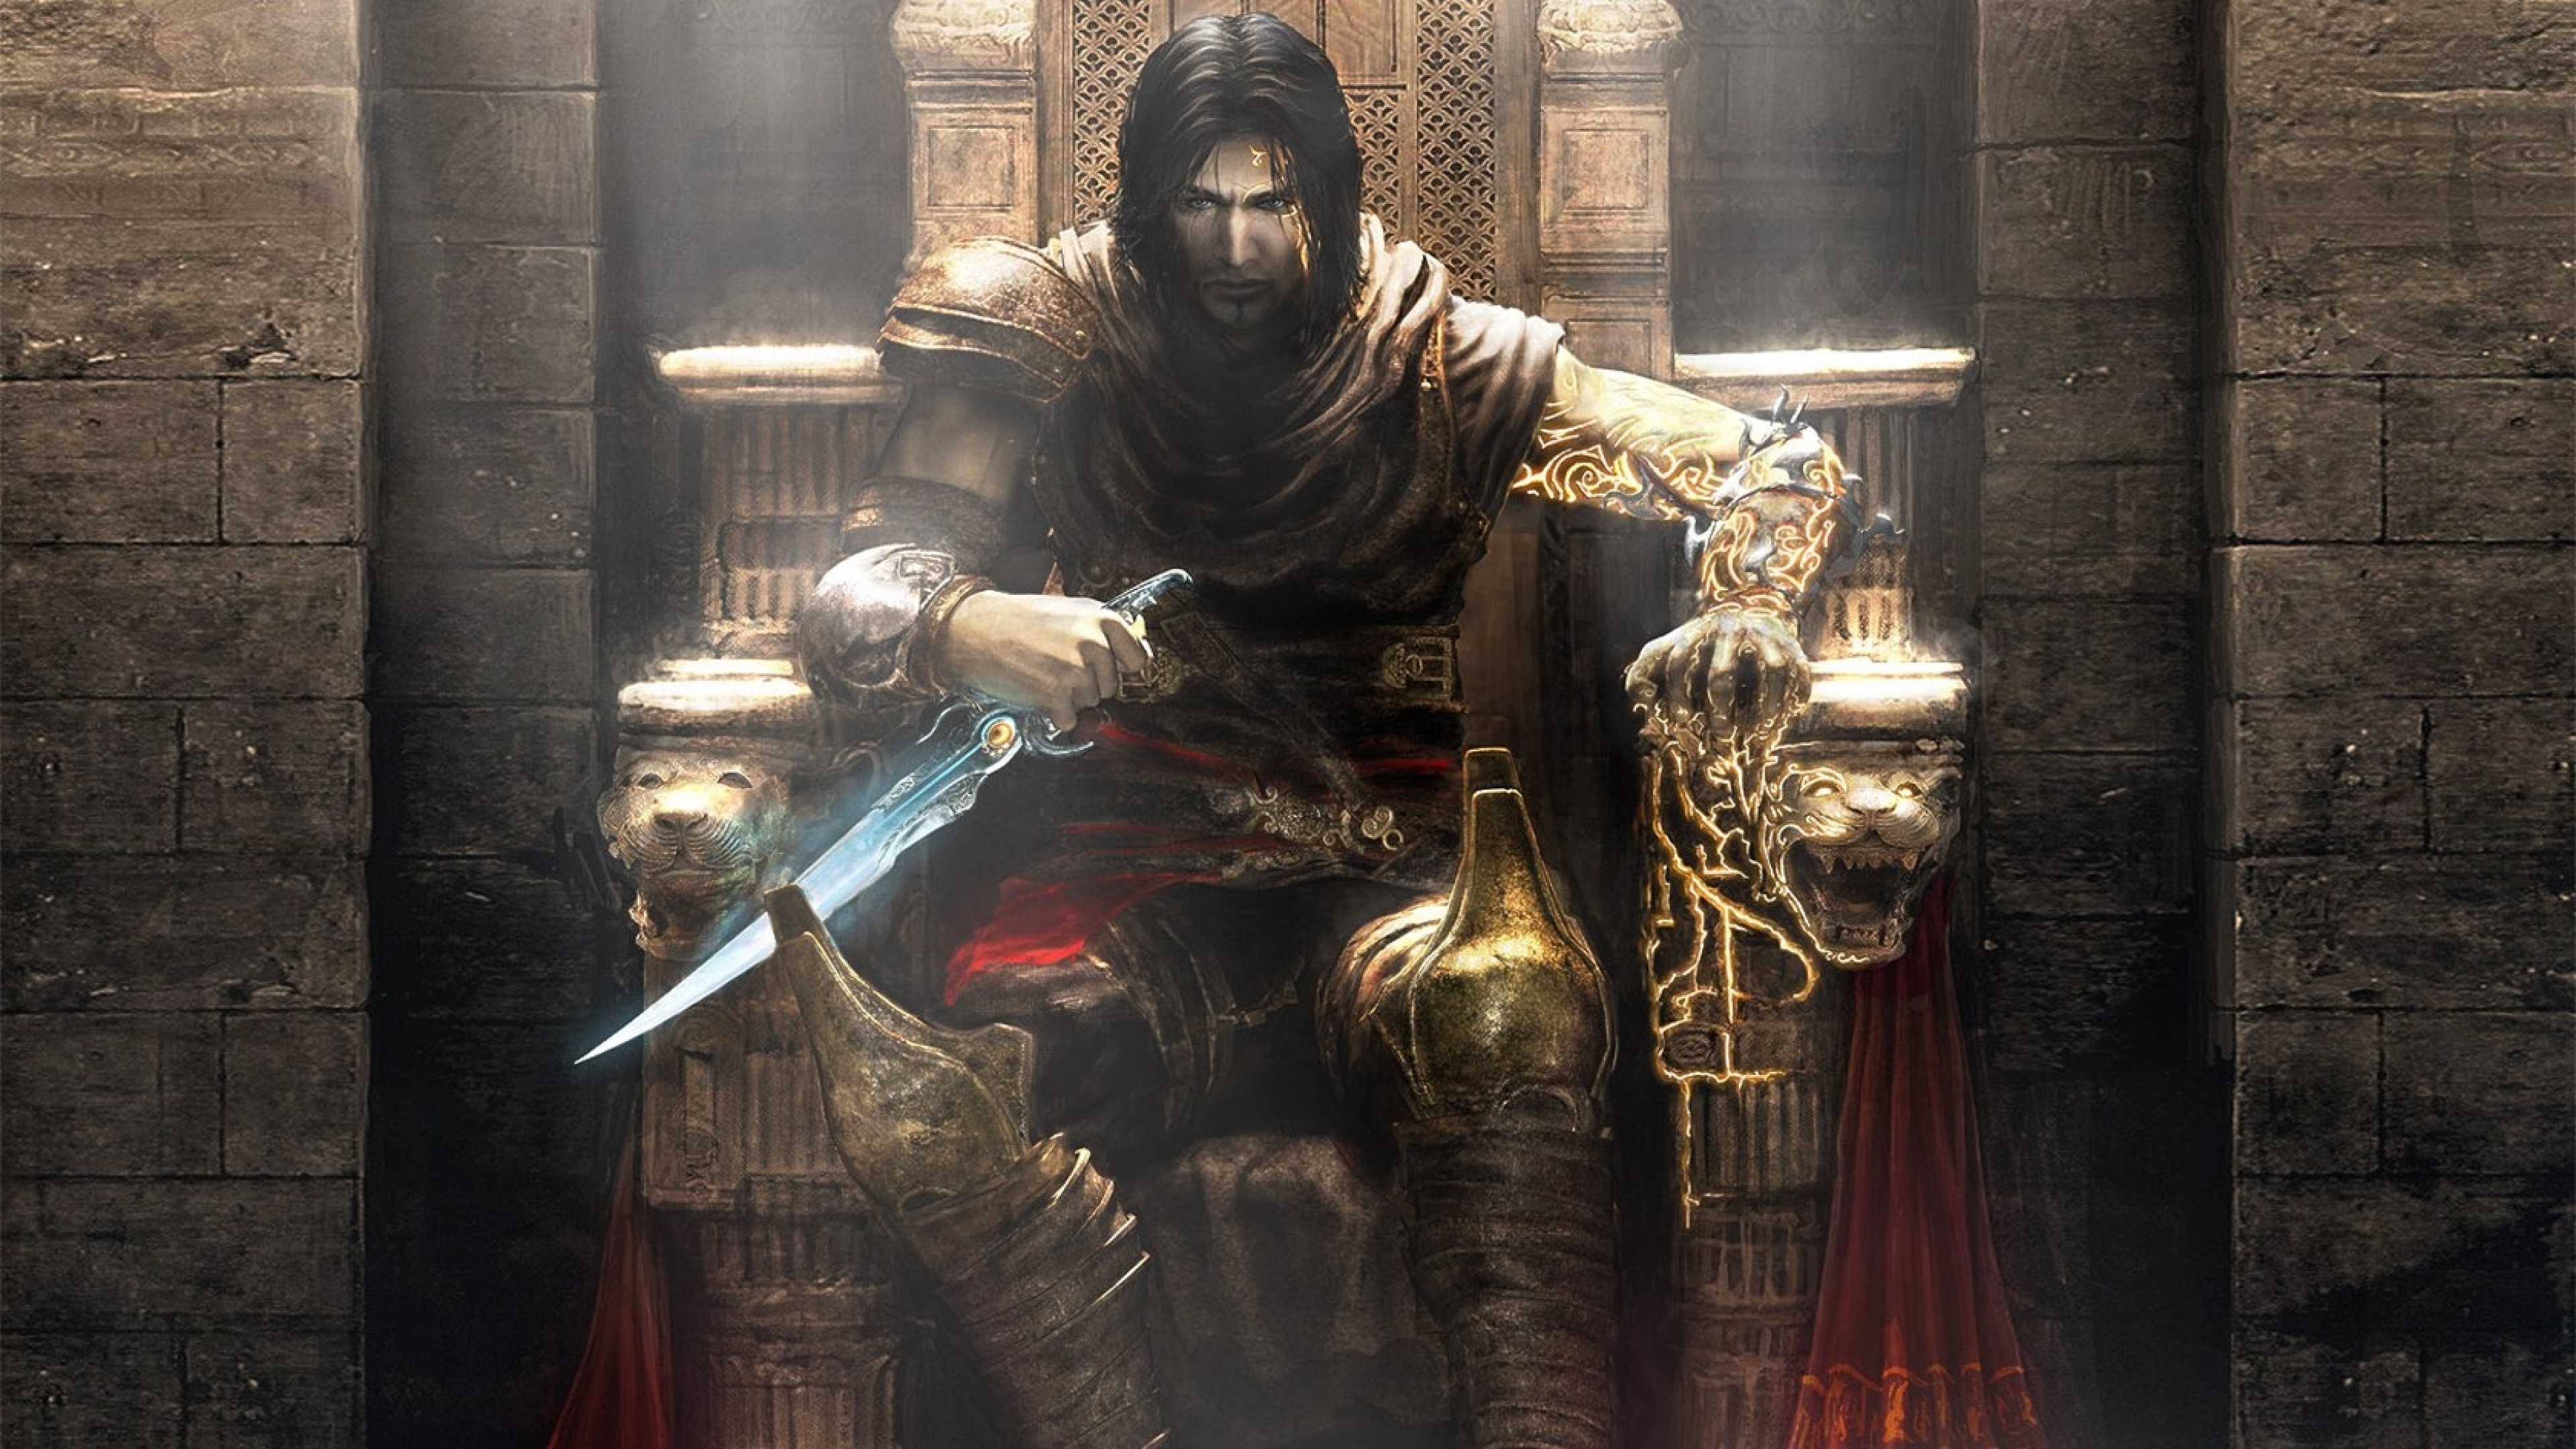 3840x2160  Wallpaper prince of persia, throne, knife, armor